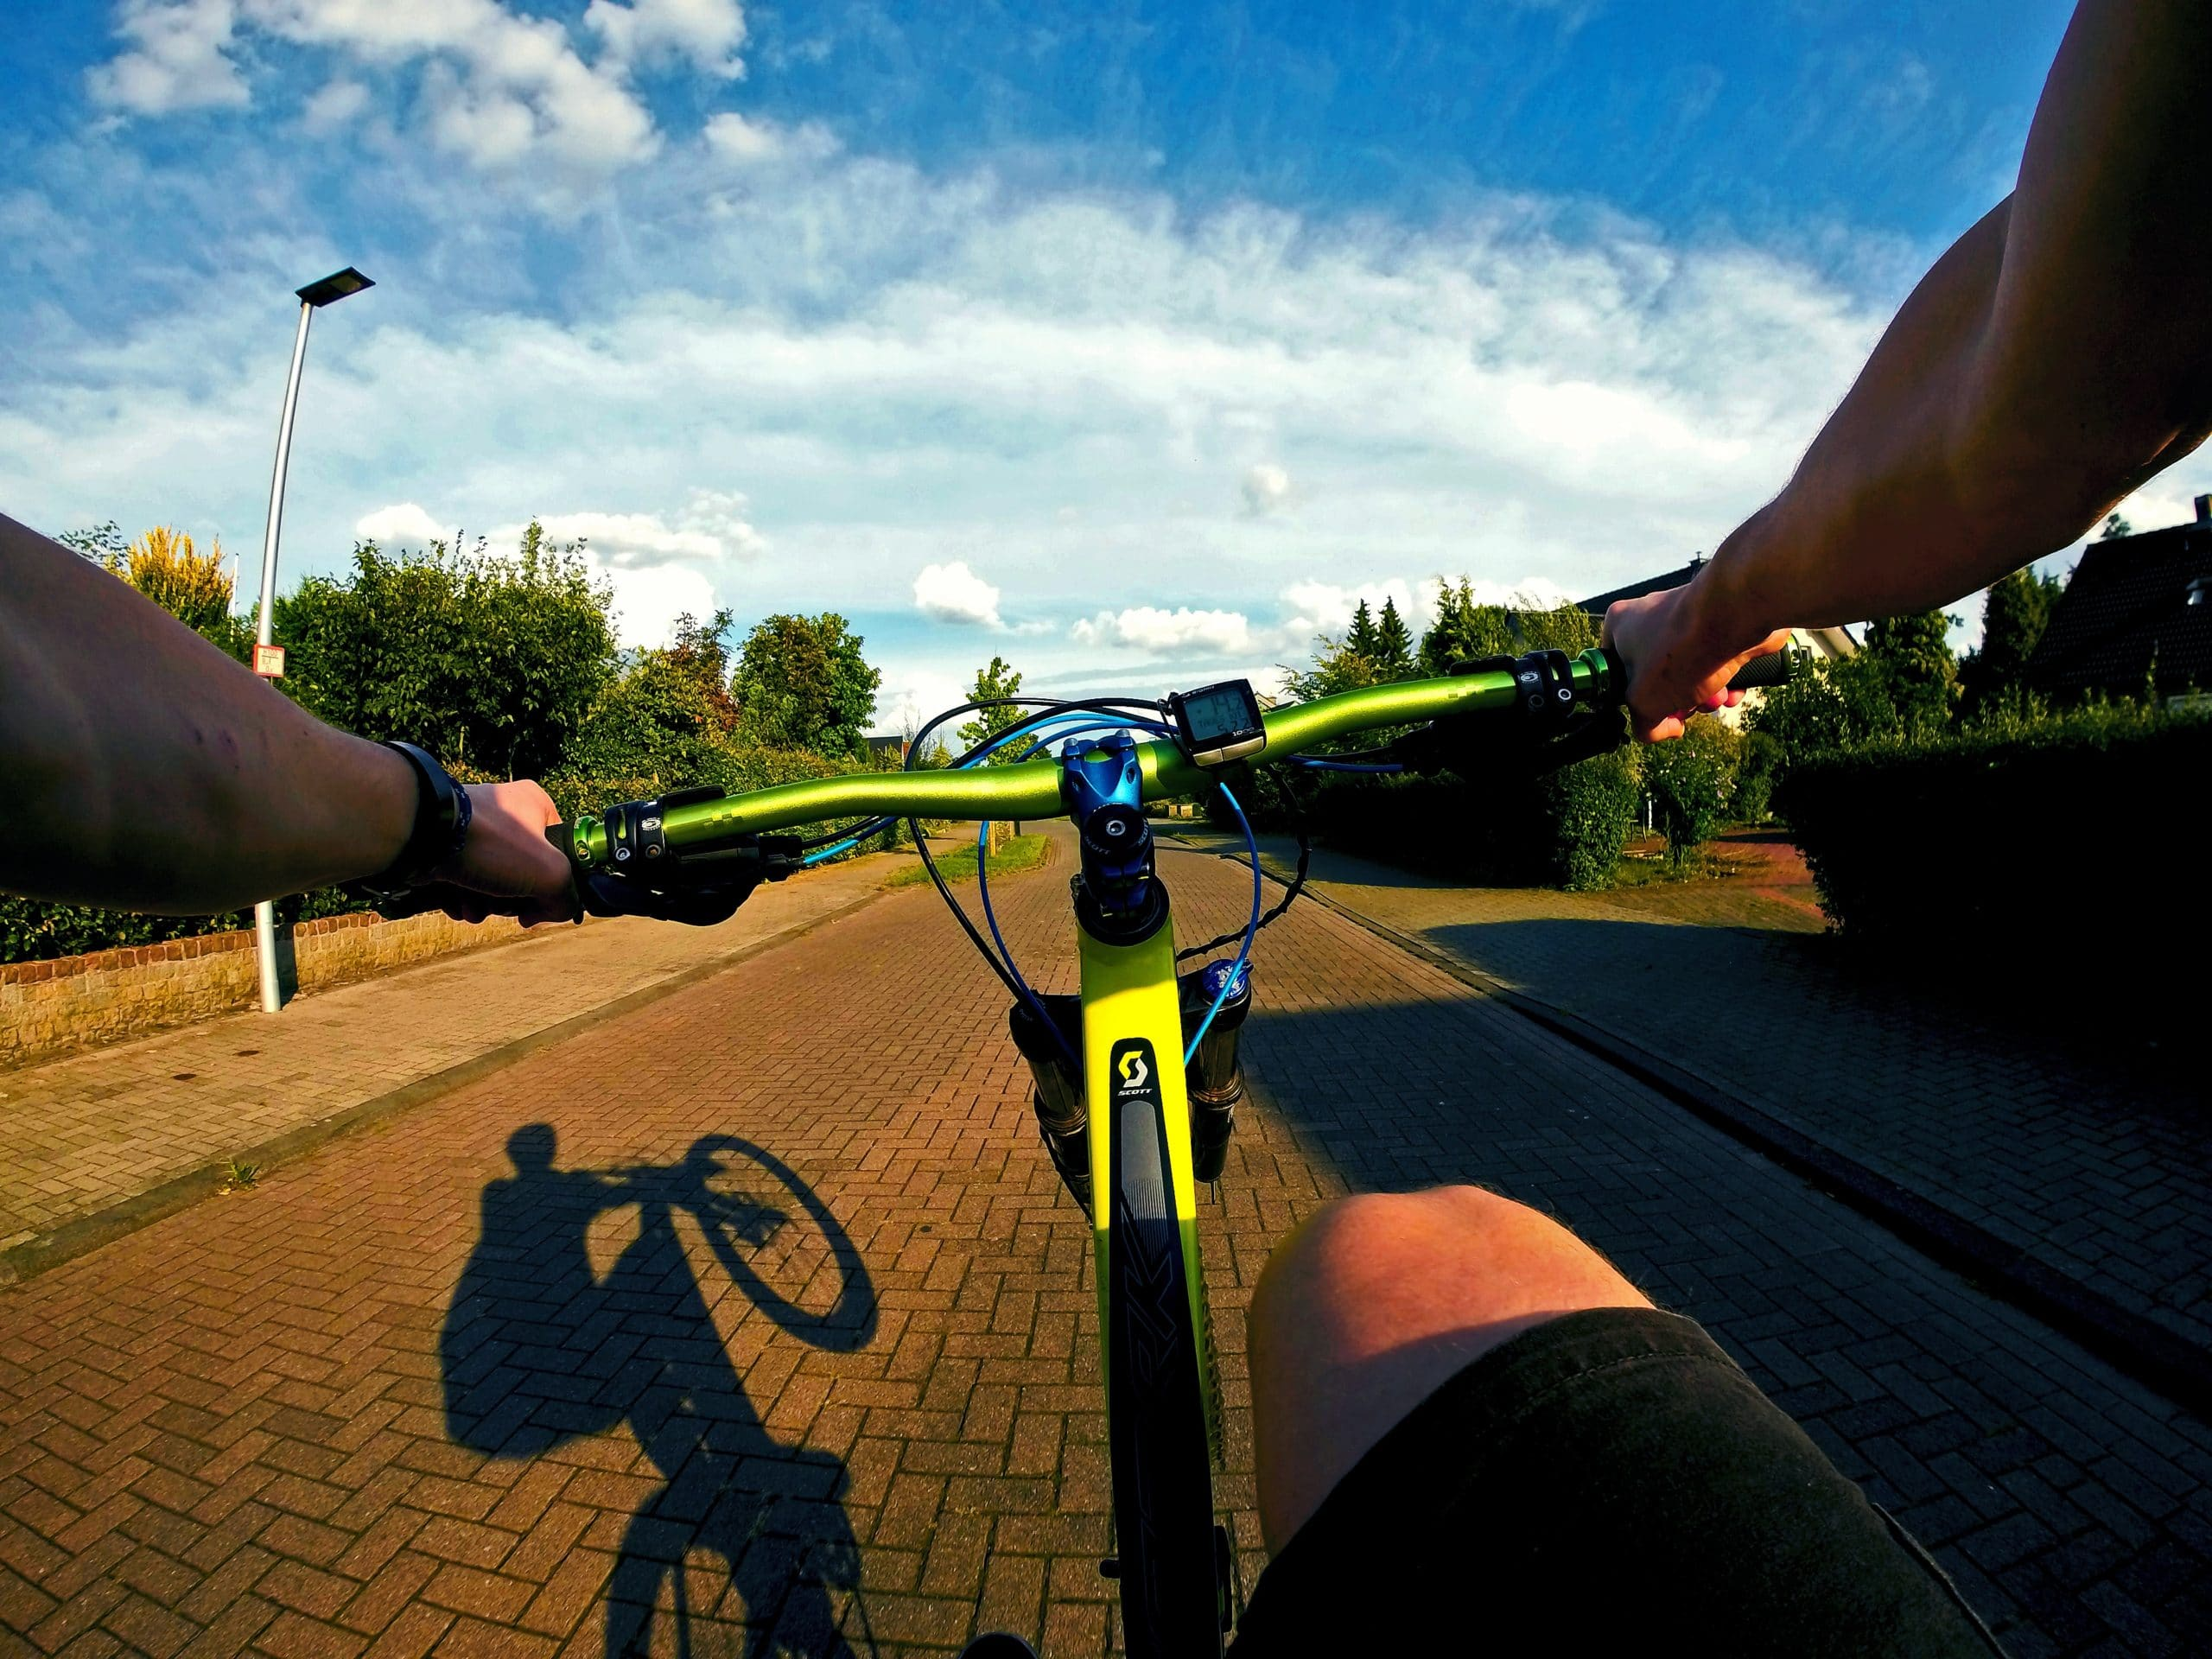 Stiffness of a Carbon Mountain Bike vs. Aluminum: Image of first-person wheelie